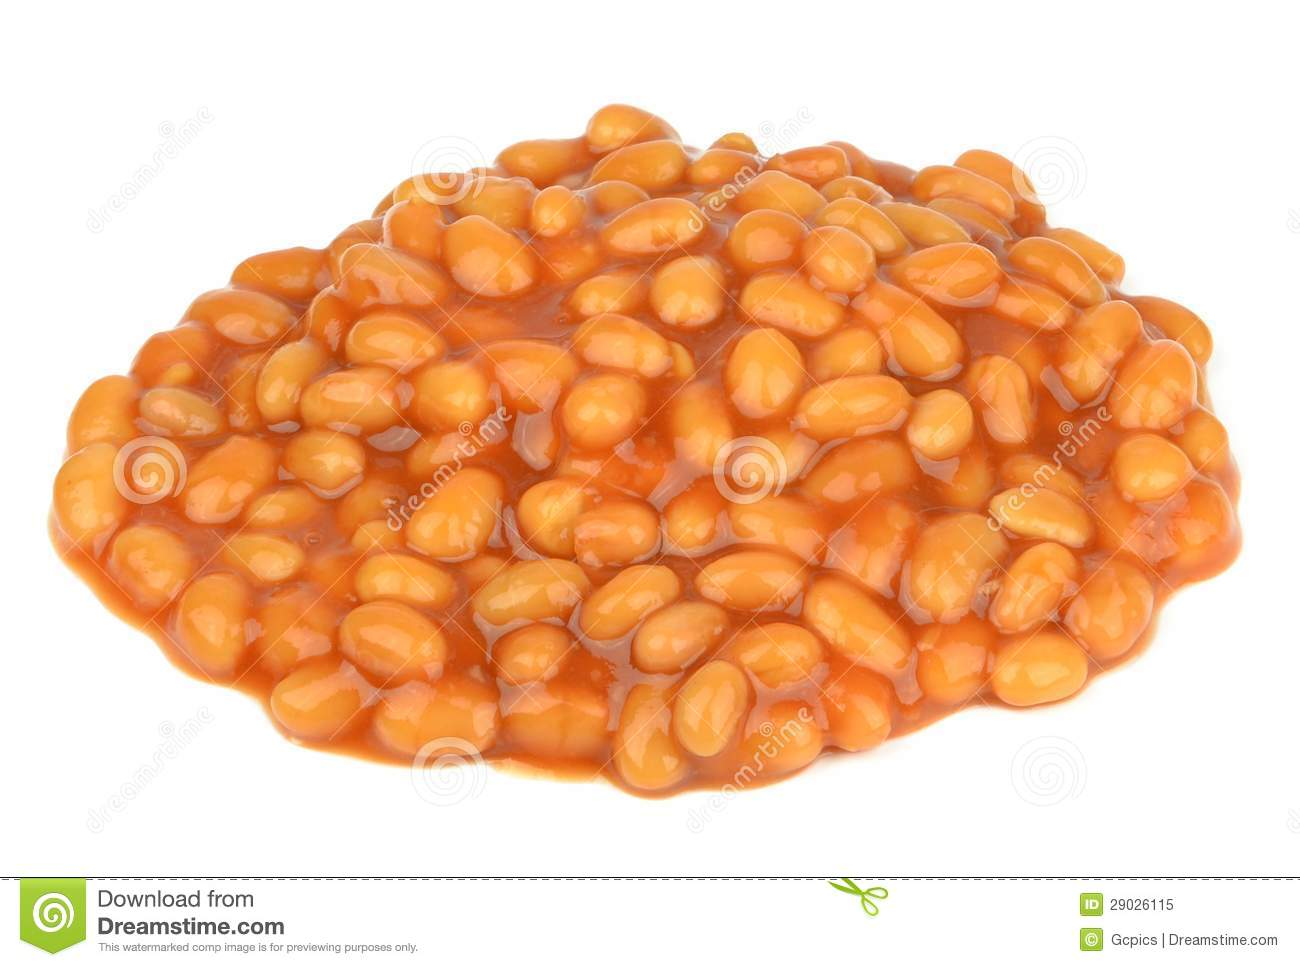 Baked Beans In Tomato Sauce Stock Image - Image: 29026115